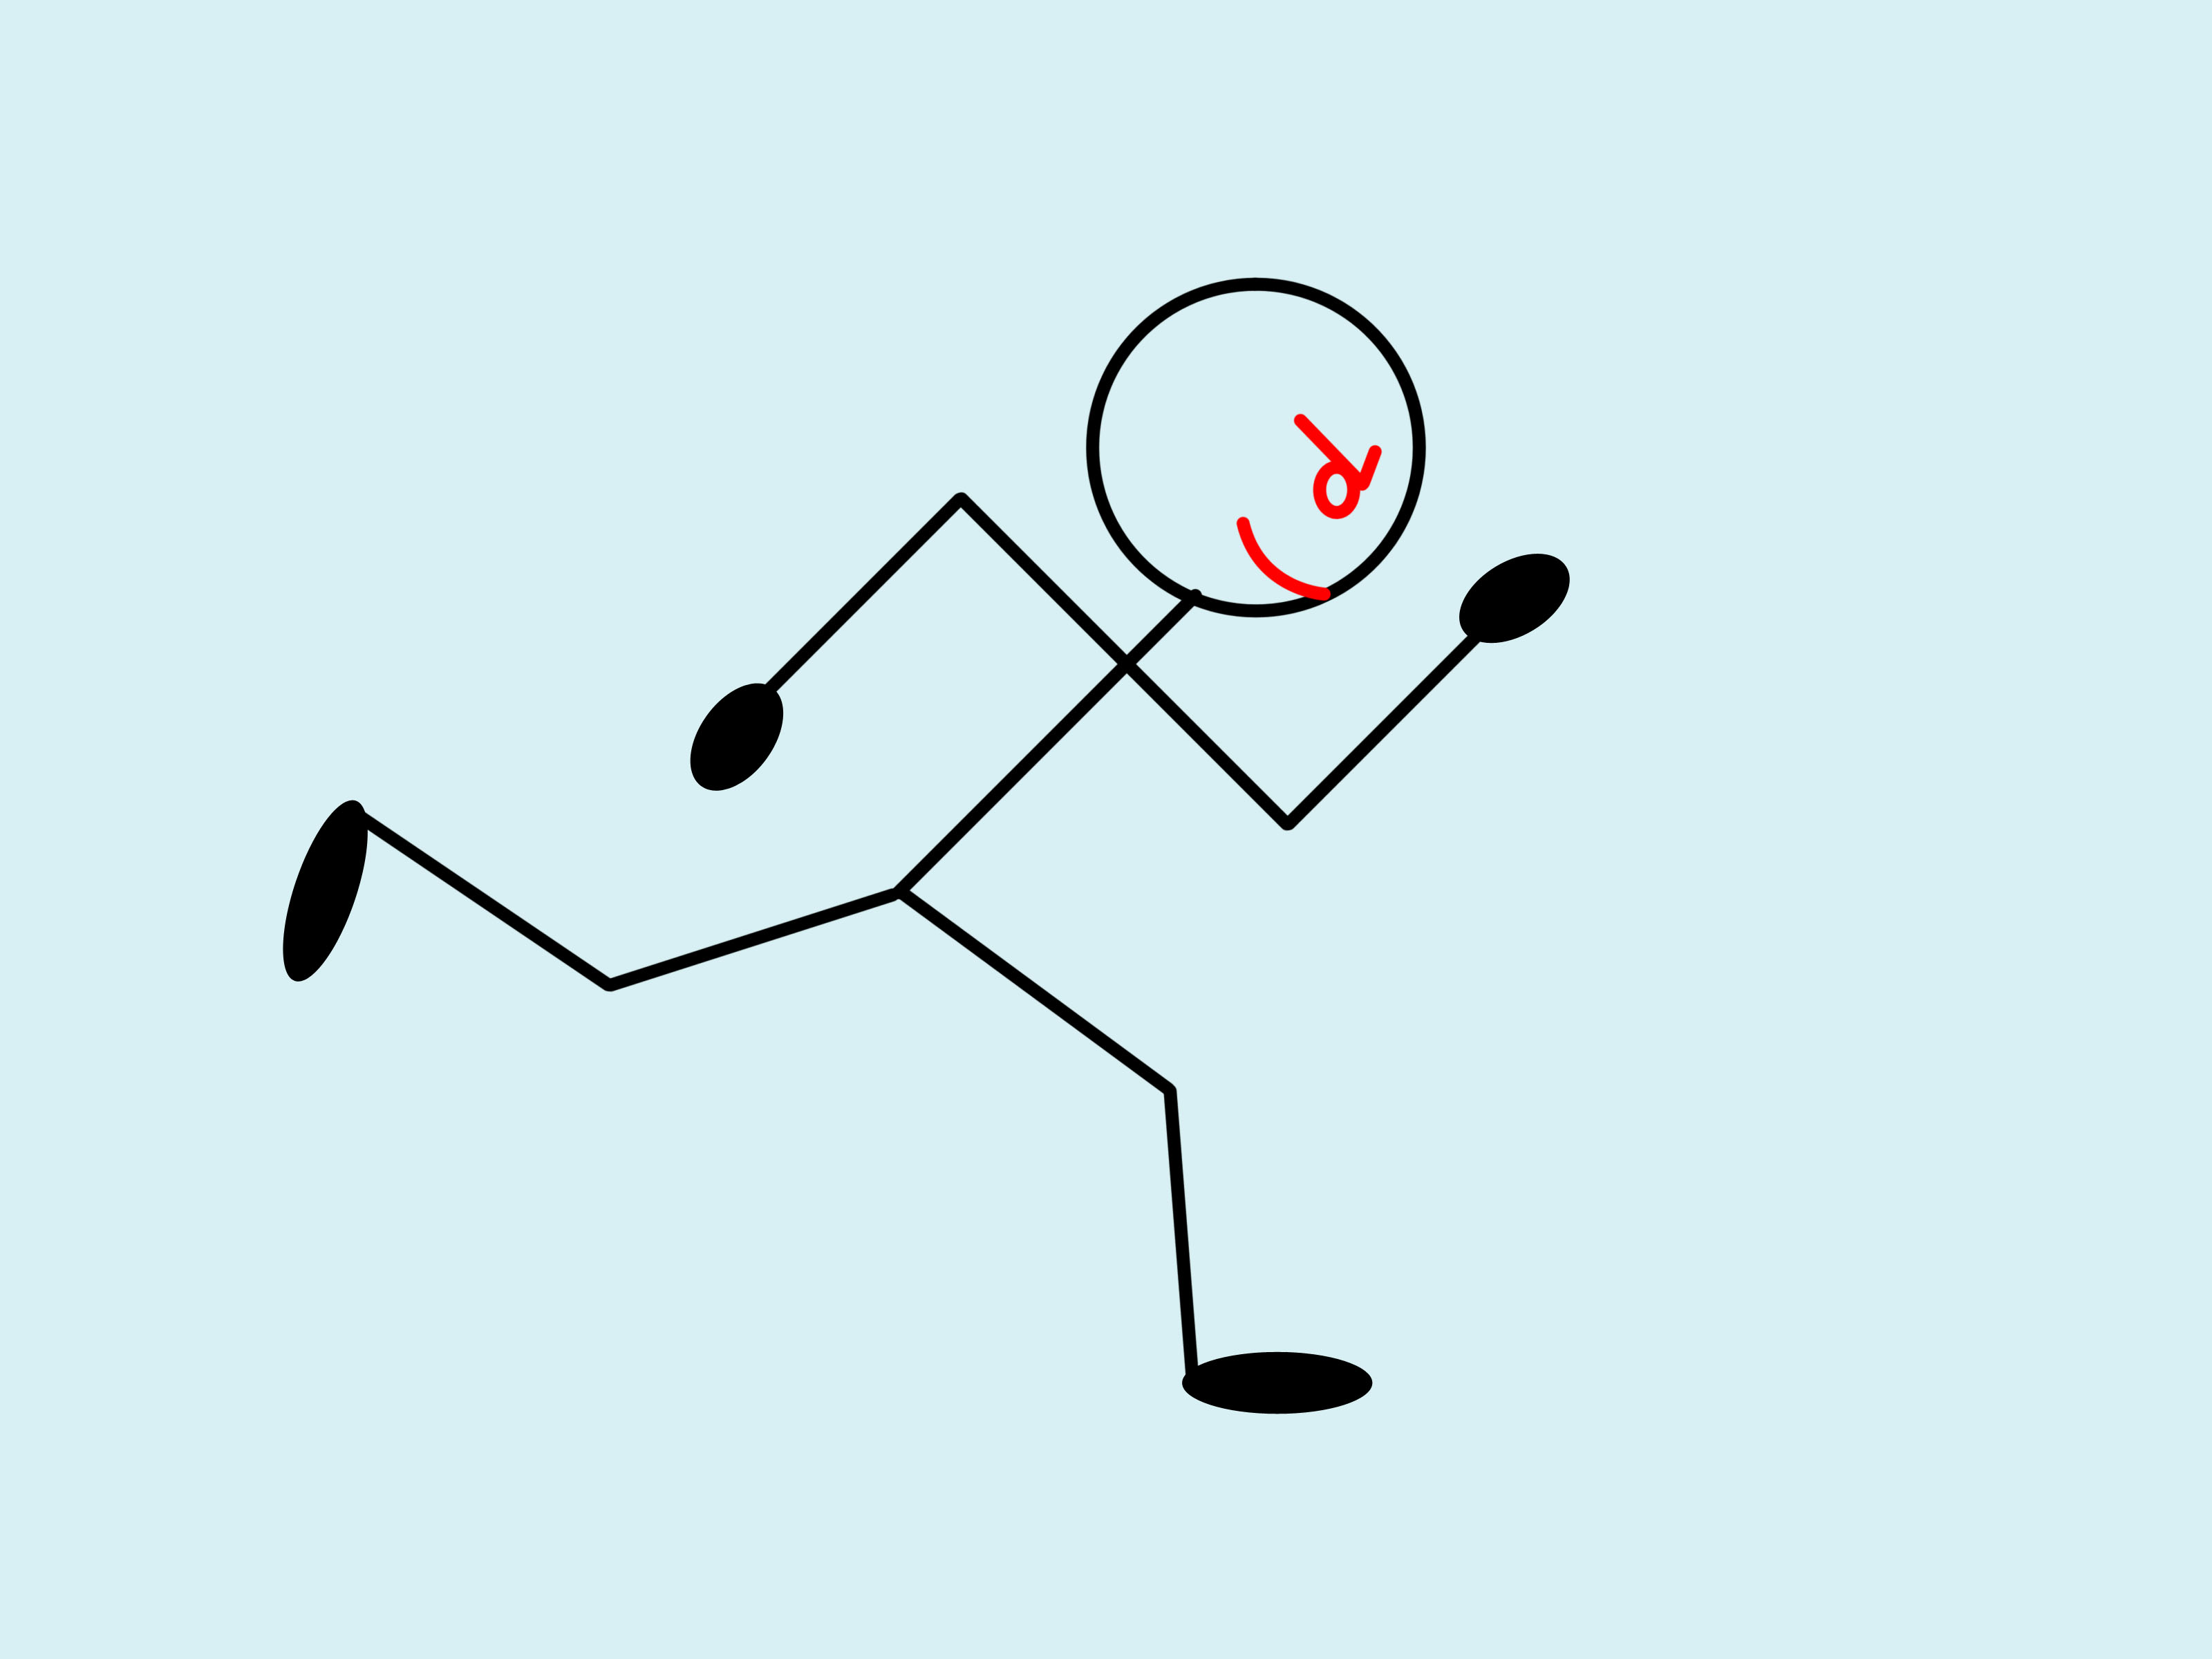 3200x2400 Stick Figure Running